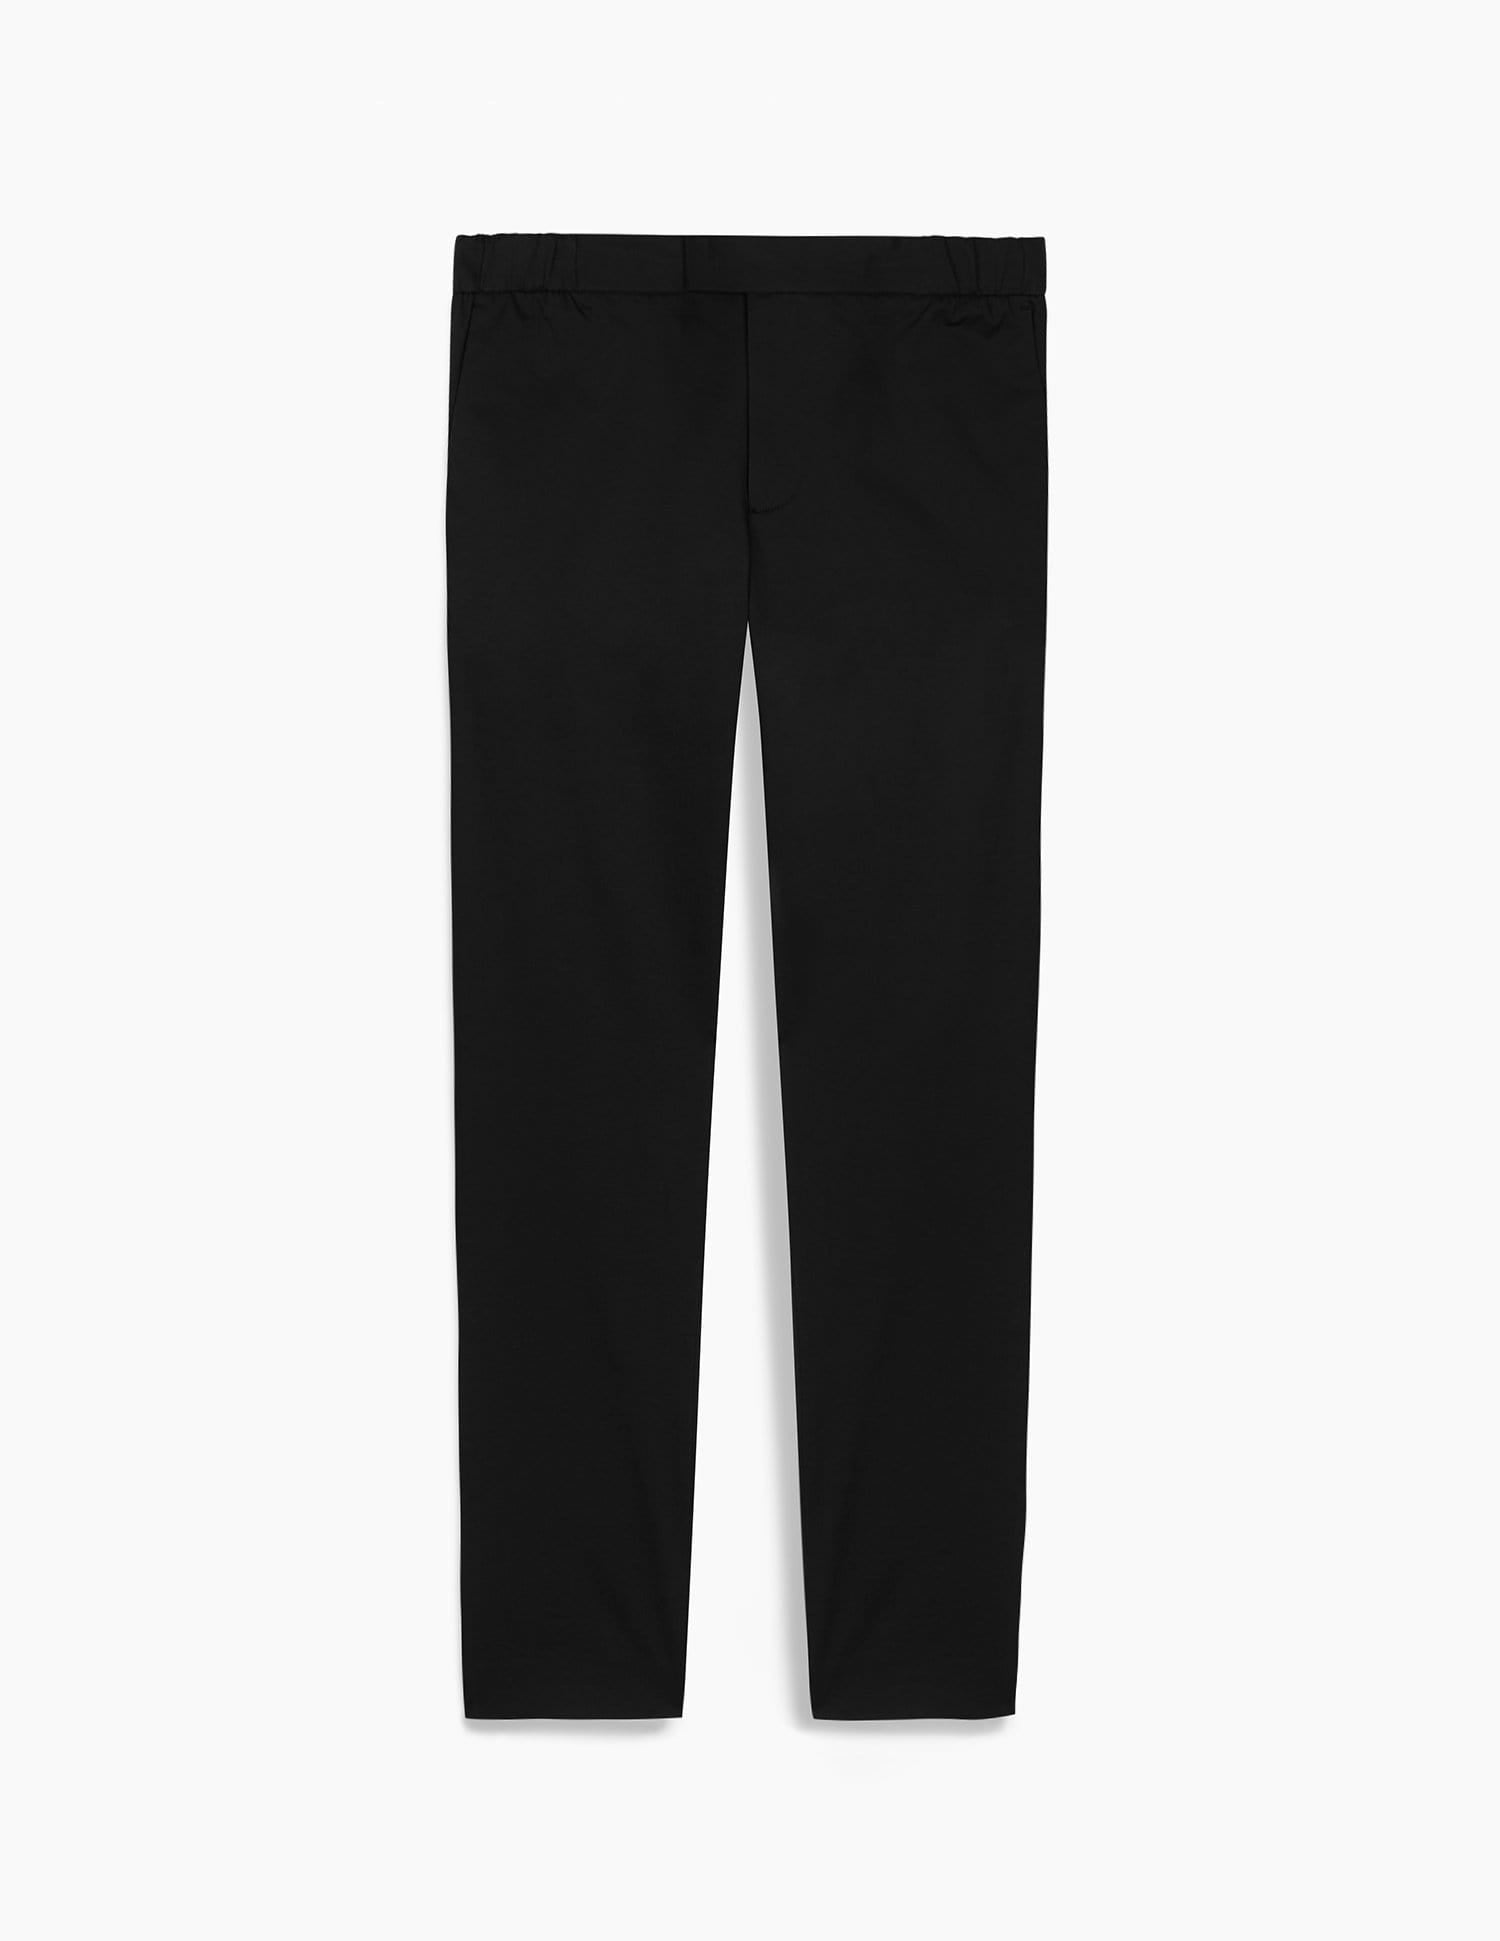 The 24 Trousers Heavyweight || Black | Heavyweight Edition